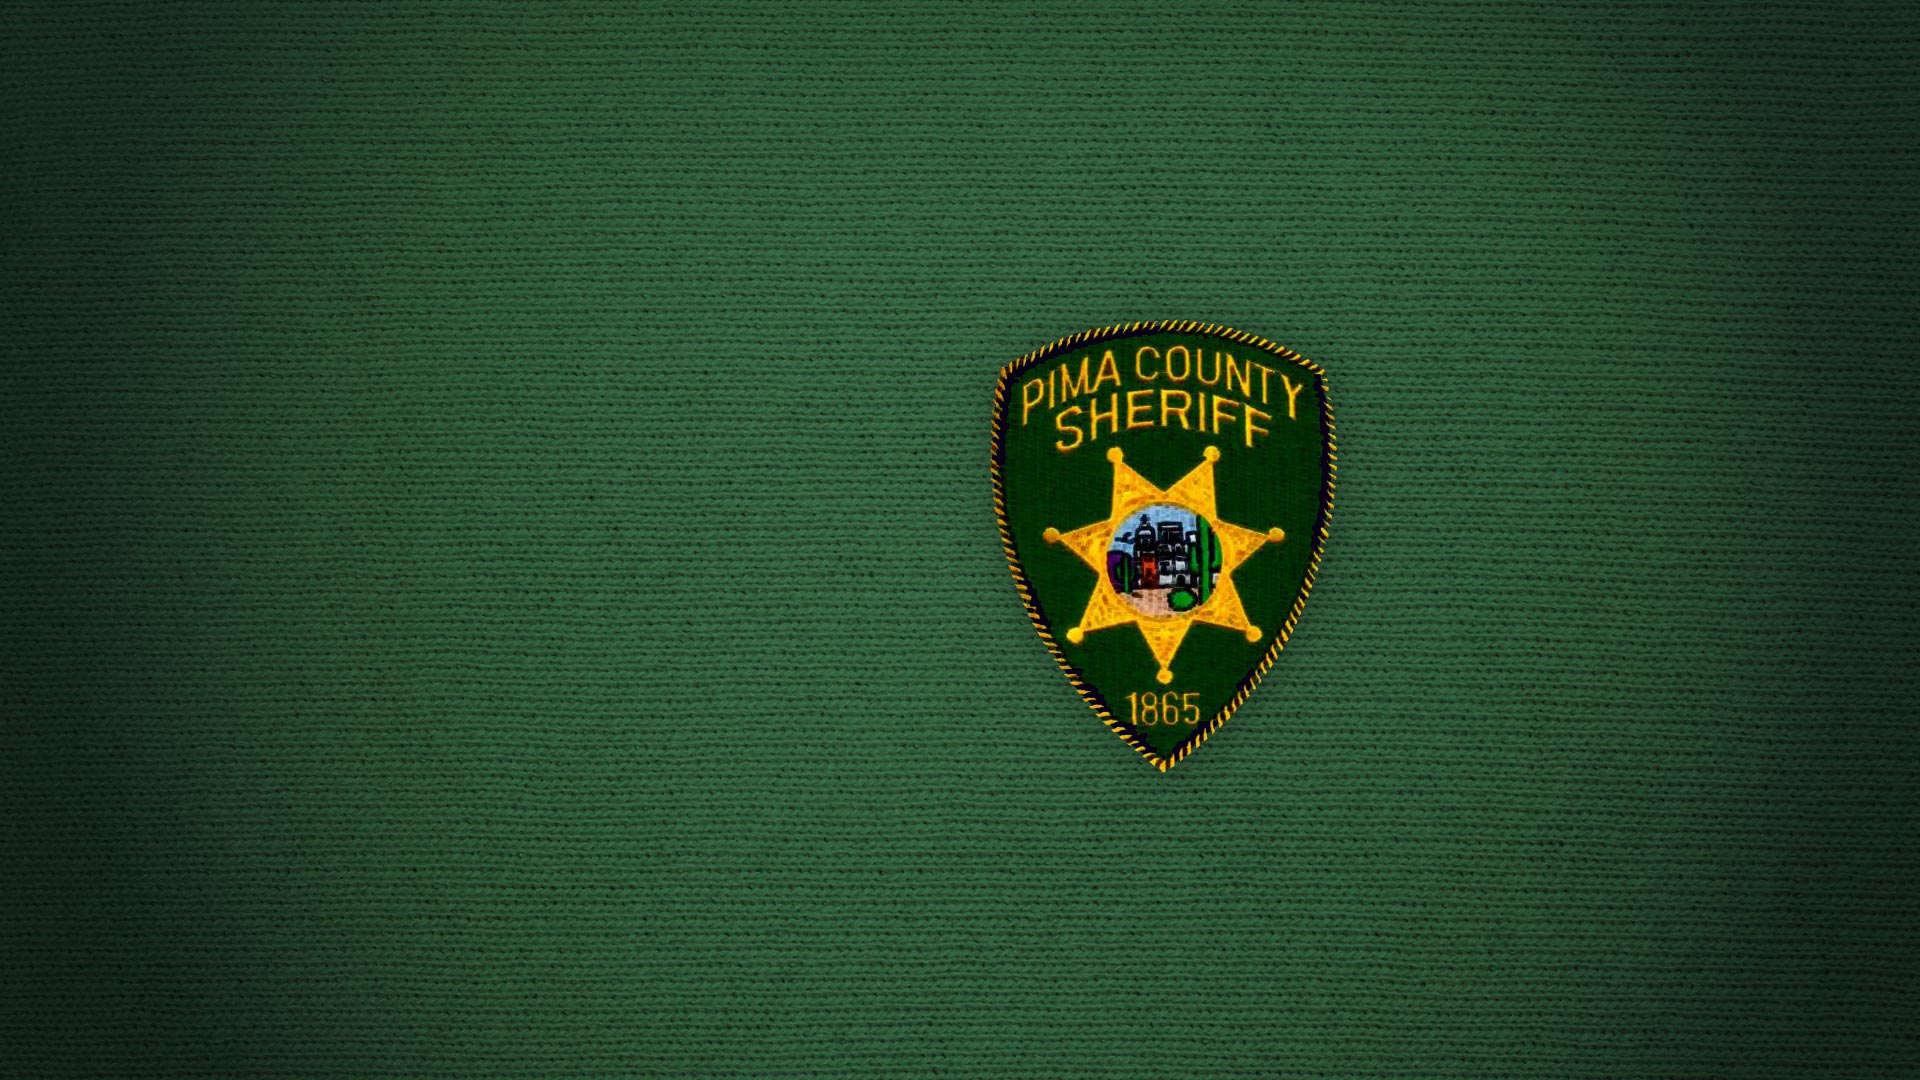 A patch for the Pima County Sheriff's Dept.